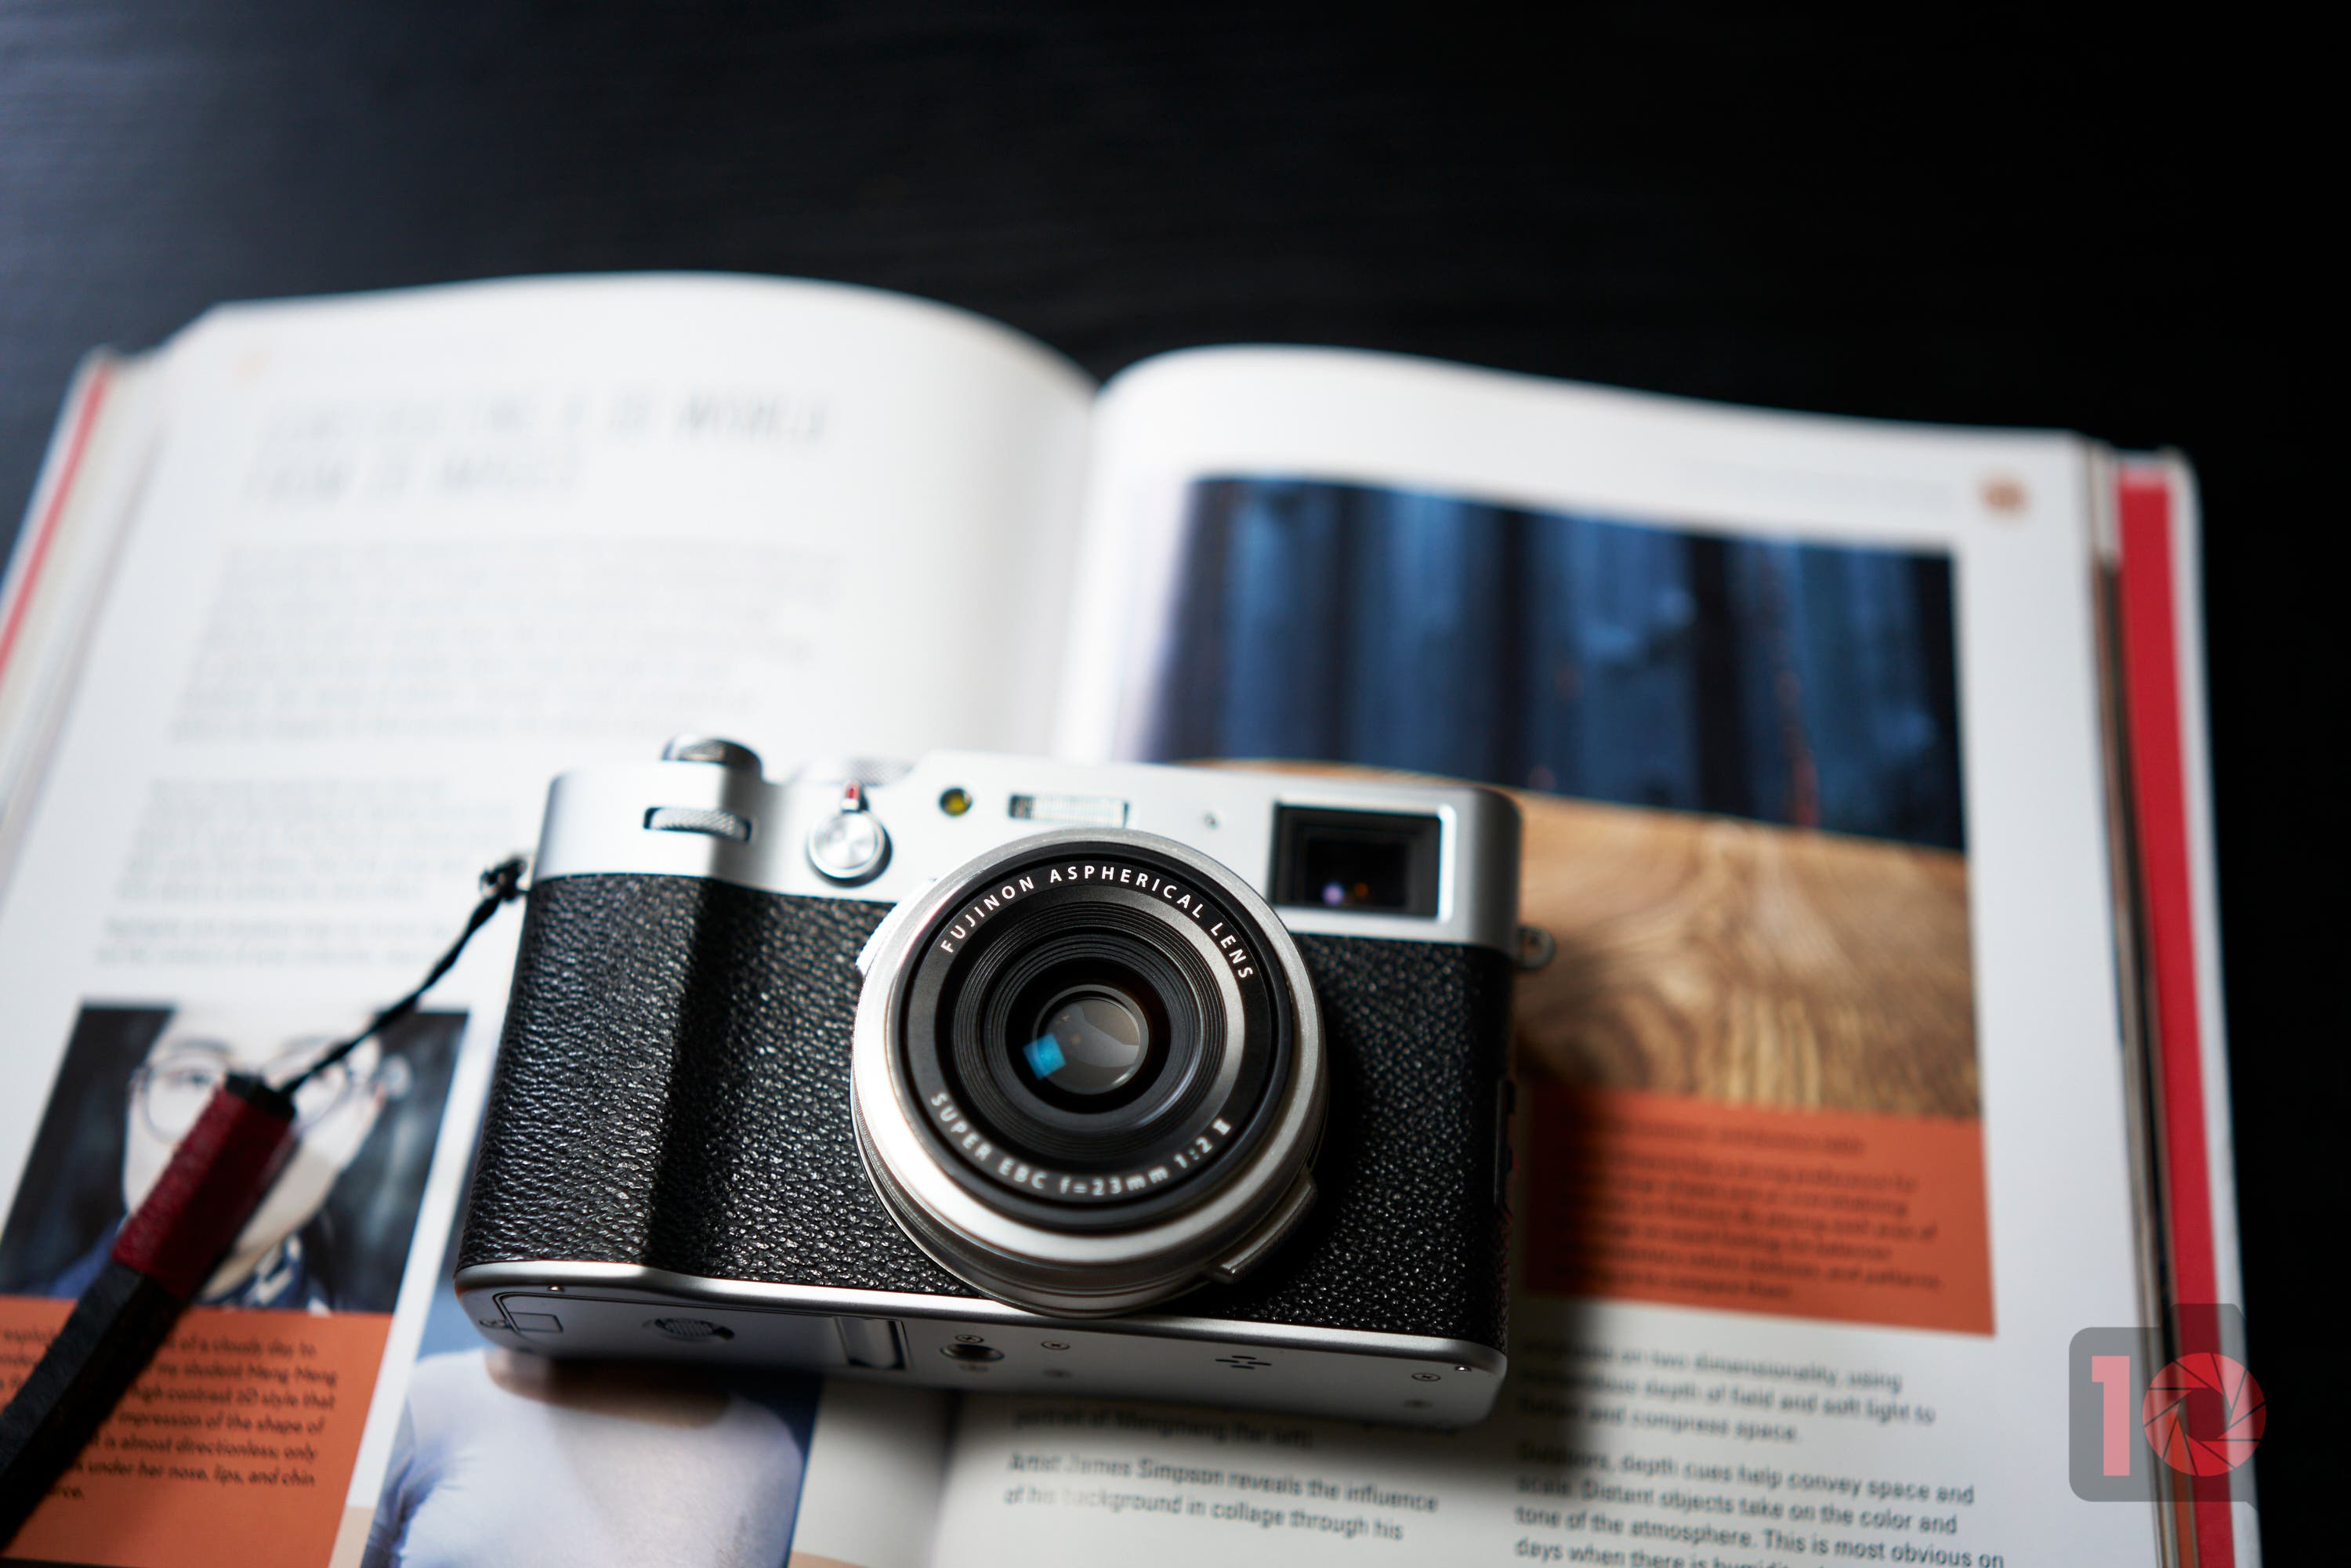 We're Looking for a Specialized Writer. Want to Join Team Phoblographer?